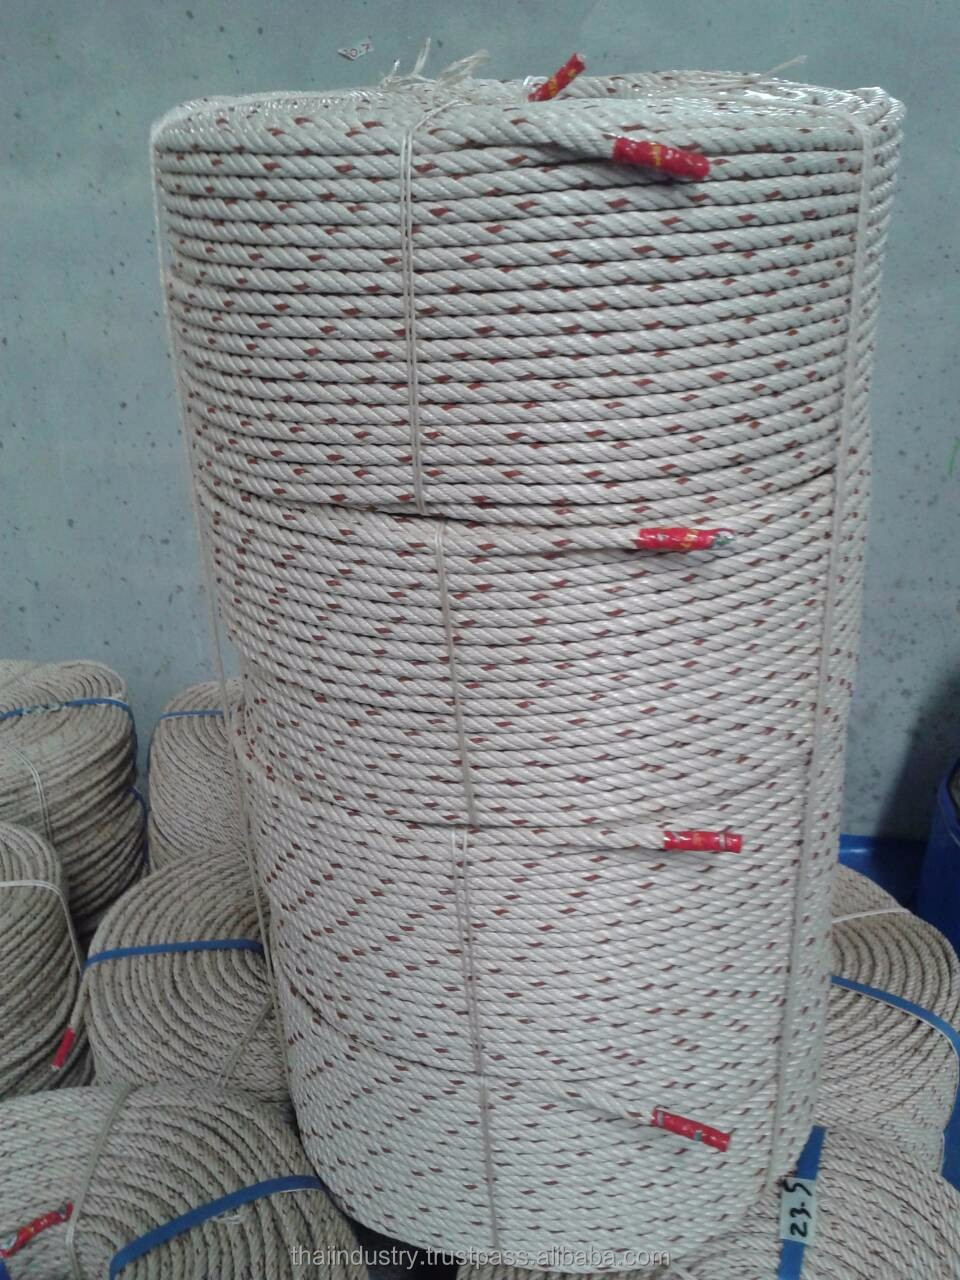 High quality PP ROPE from Thailand